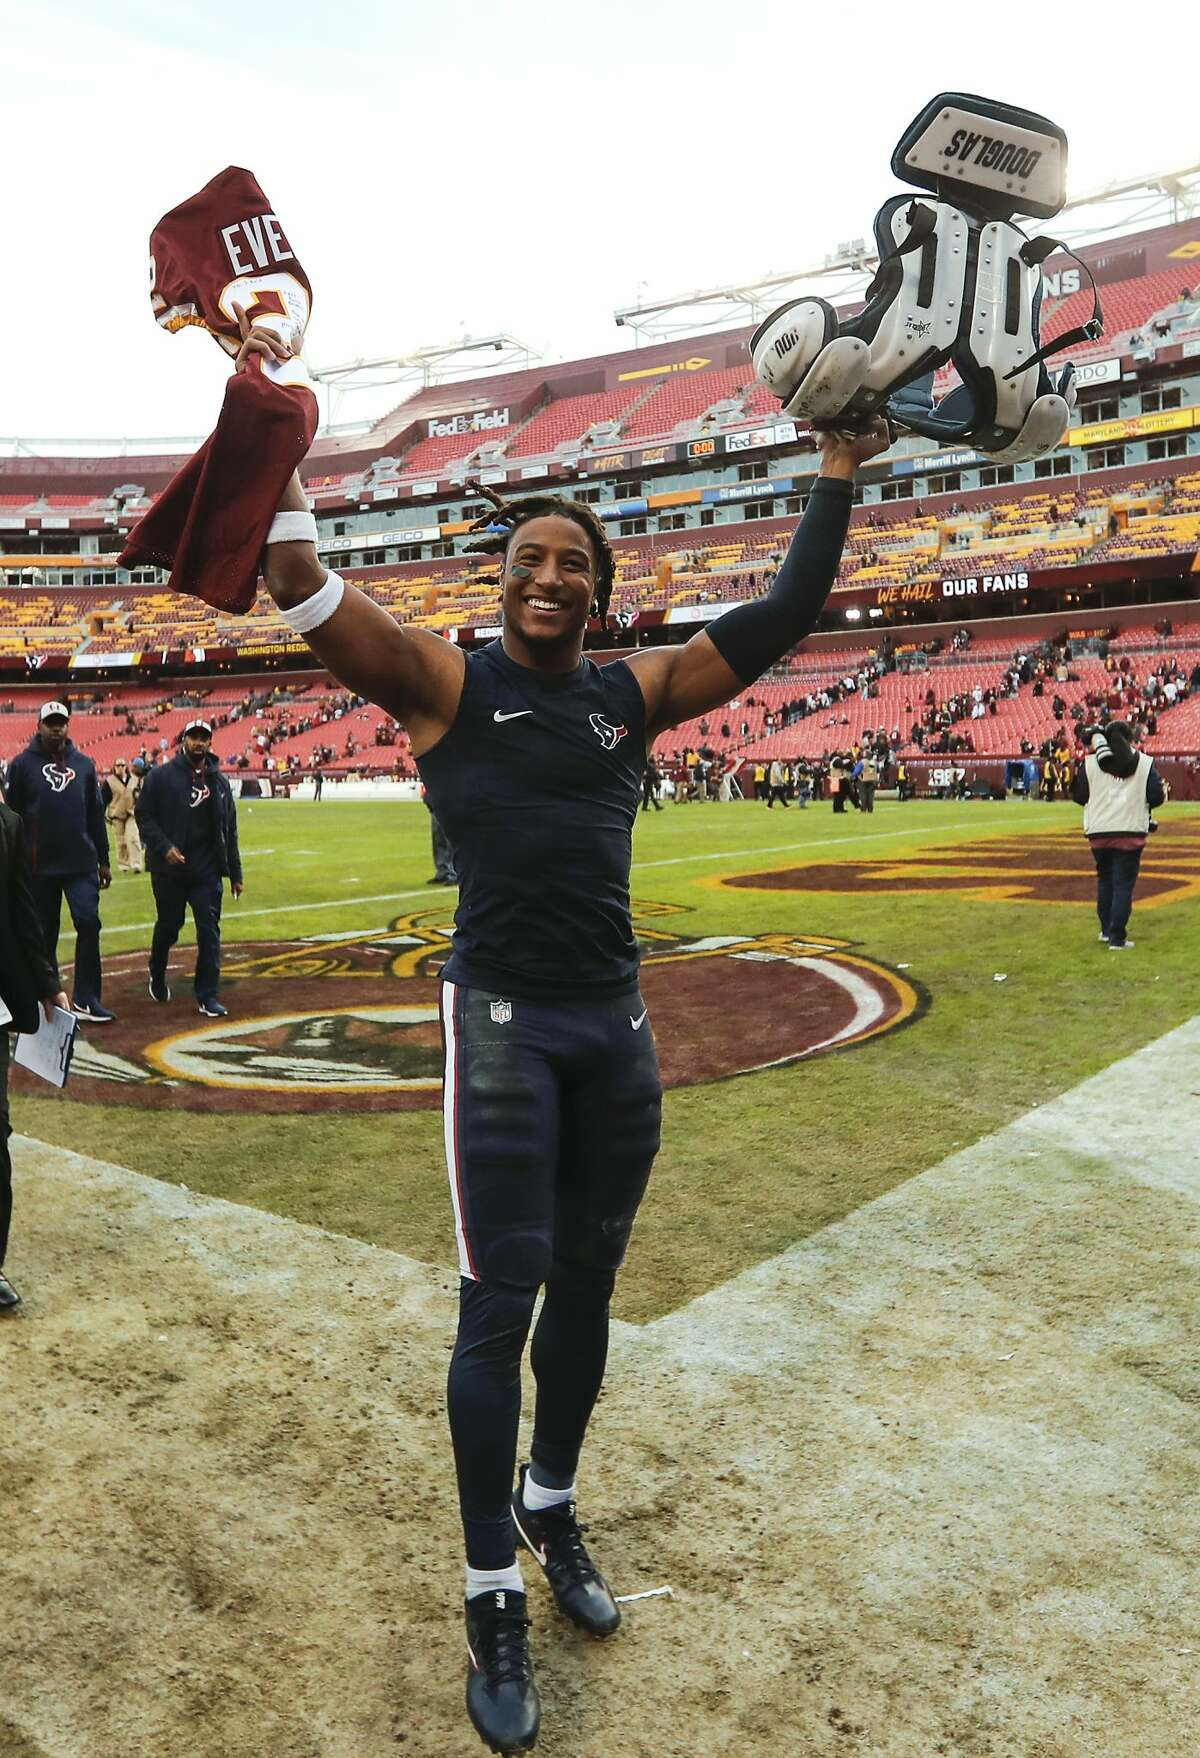 Houston Texans strong safety Justin Reid celebrates as he leaves the field following the Texans 23-21 win over Washington at FedEx Field on Sunday, Nov. 18, 2018, in Landover, Md. Reid scored on a 101-yard touchdown return of a pass by Washington quarterback Alex Smith.